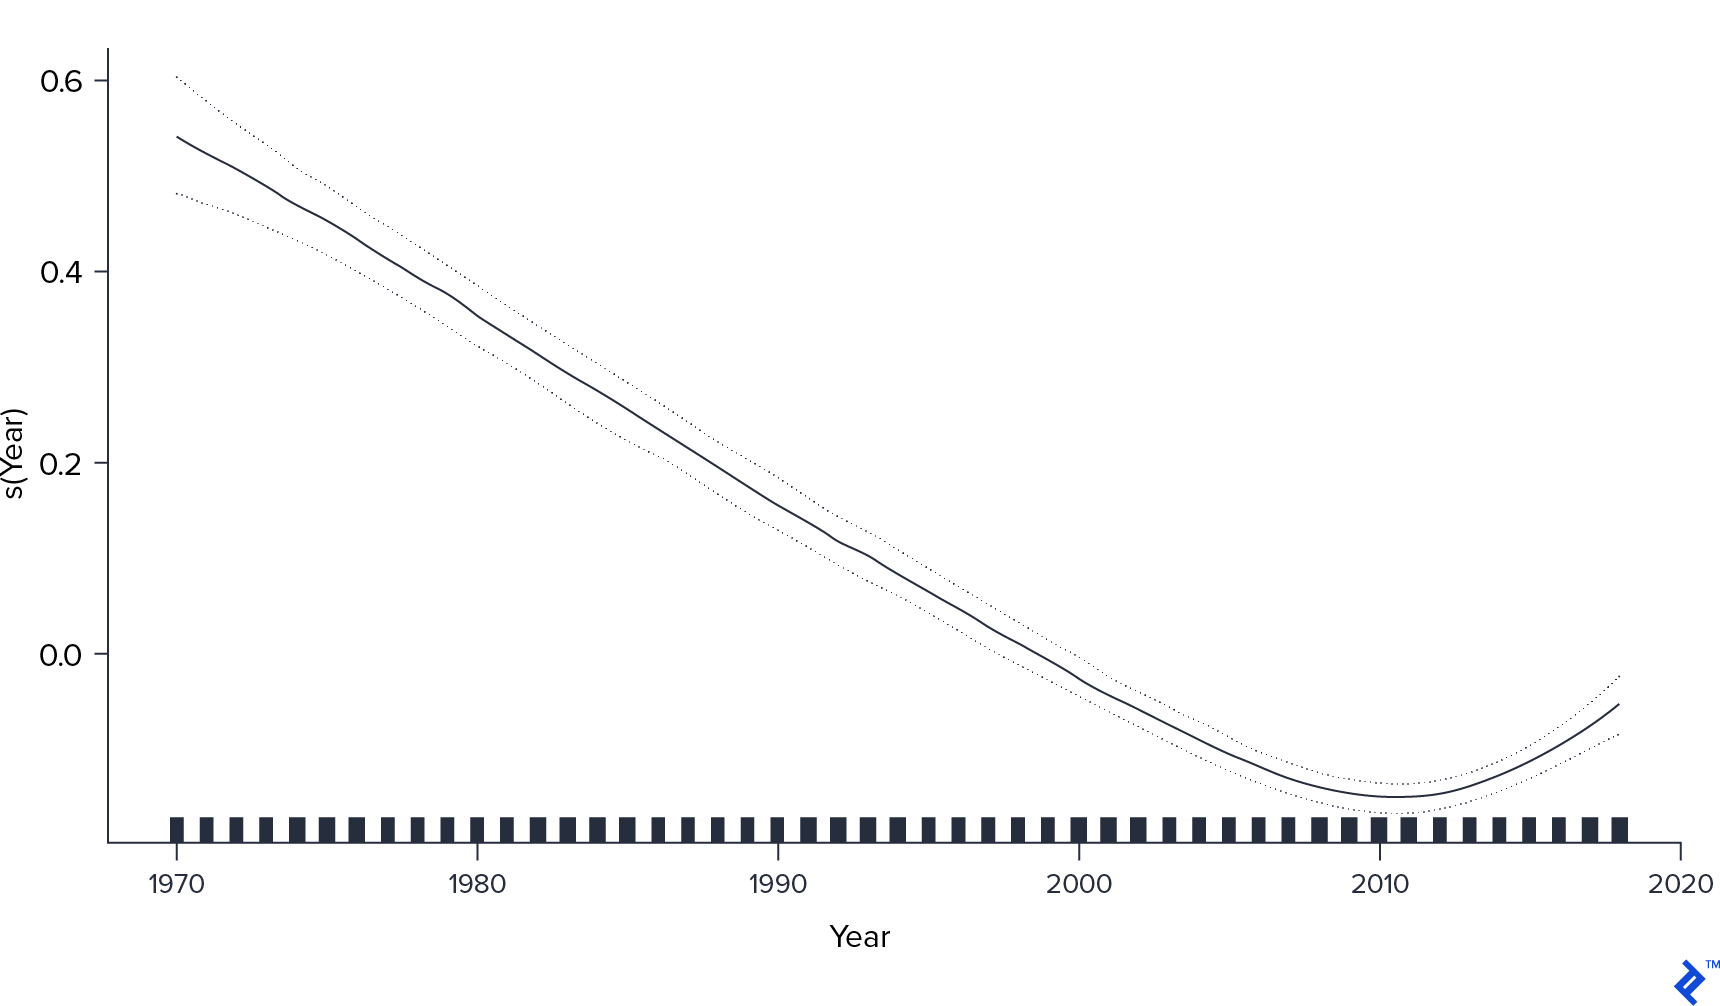 A graph of Year vs. s(Year) using the generalized additive model. The s(Year) value follows a curve starting up near 0.6 for 1970, bottoming out below 0 at 2010, and increasing to near 0 again by 2019.